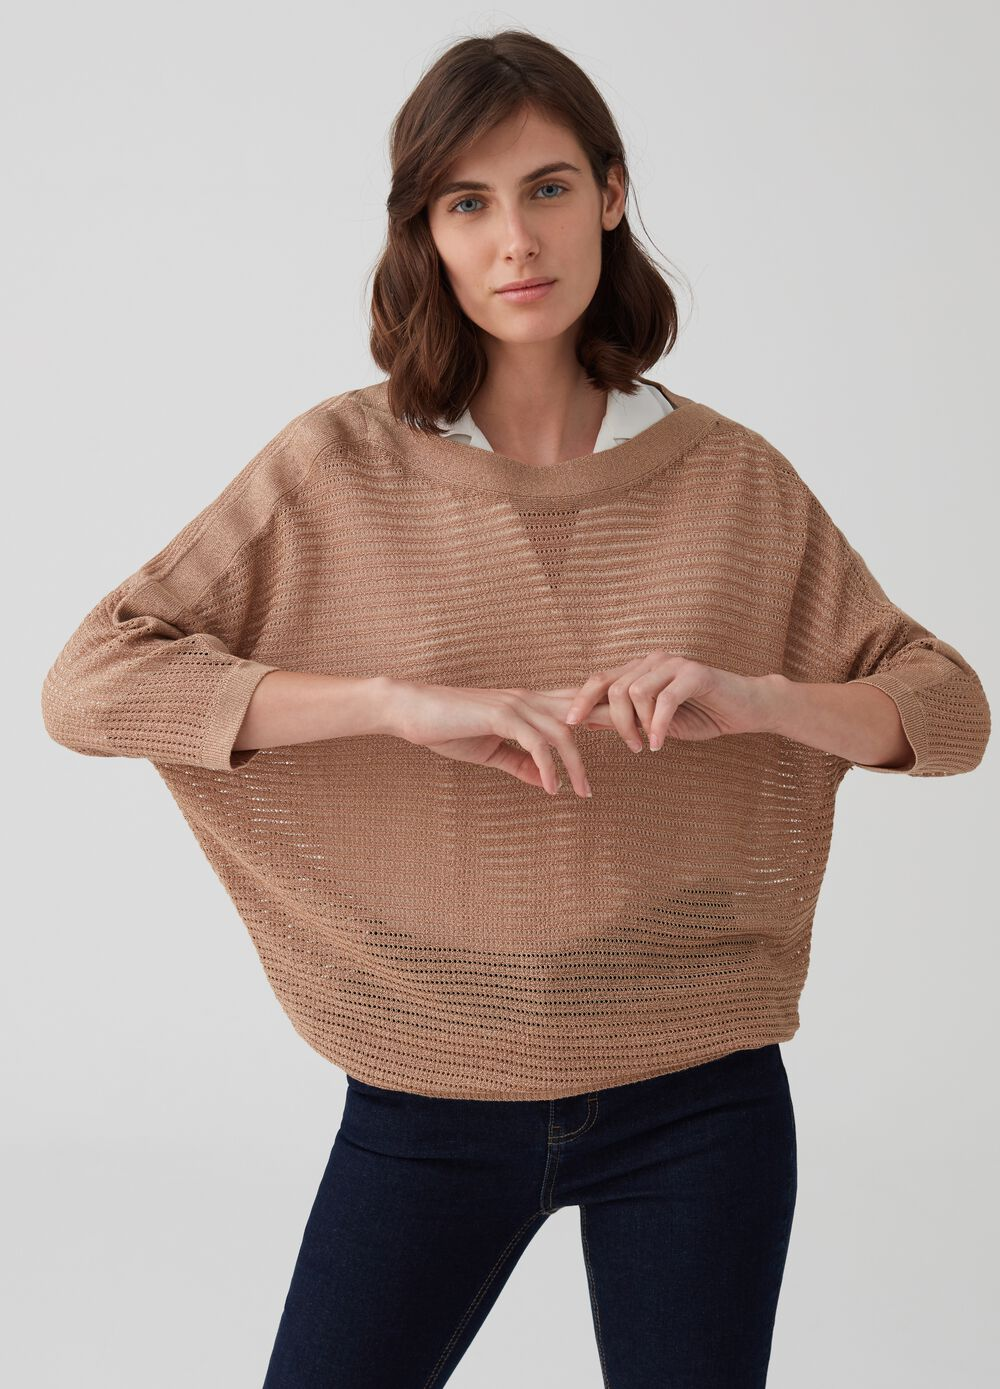 Openwork pullover with batwing sleeves